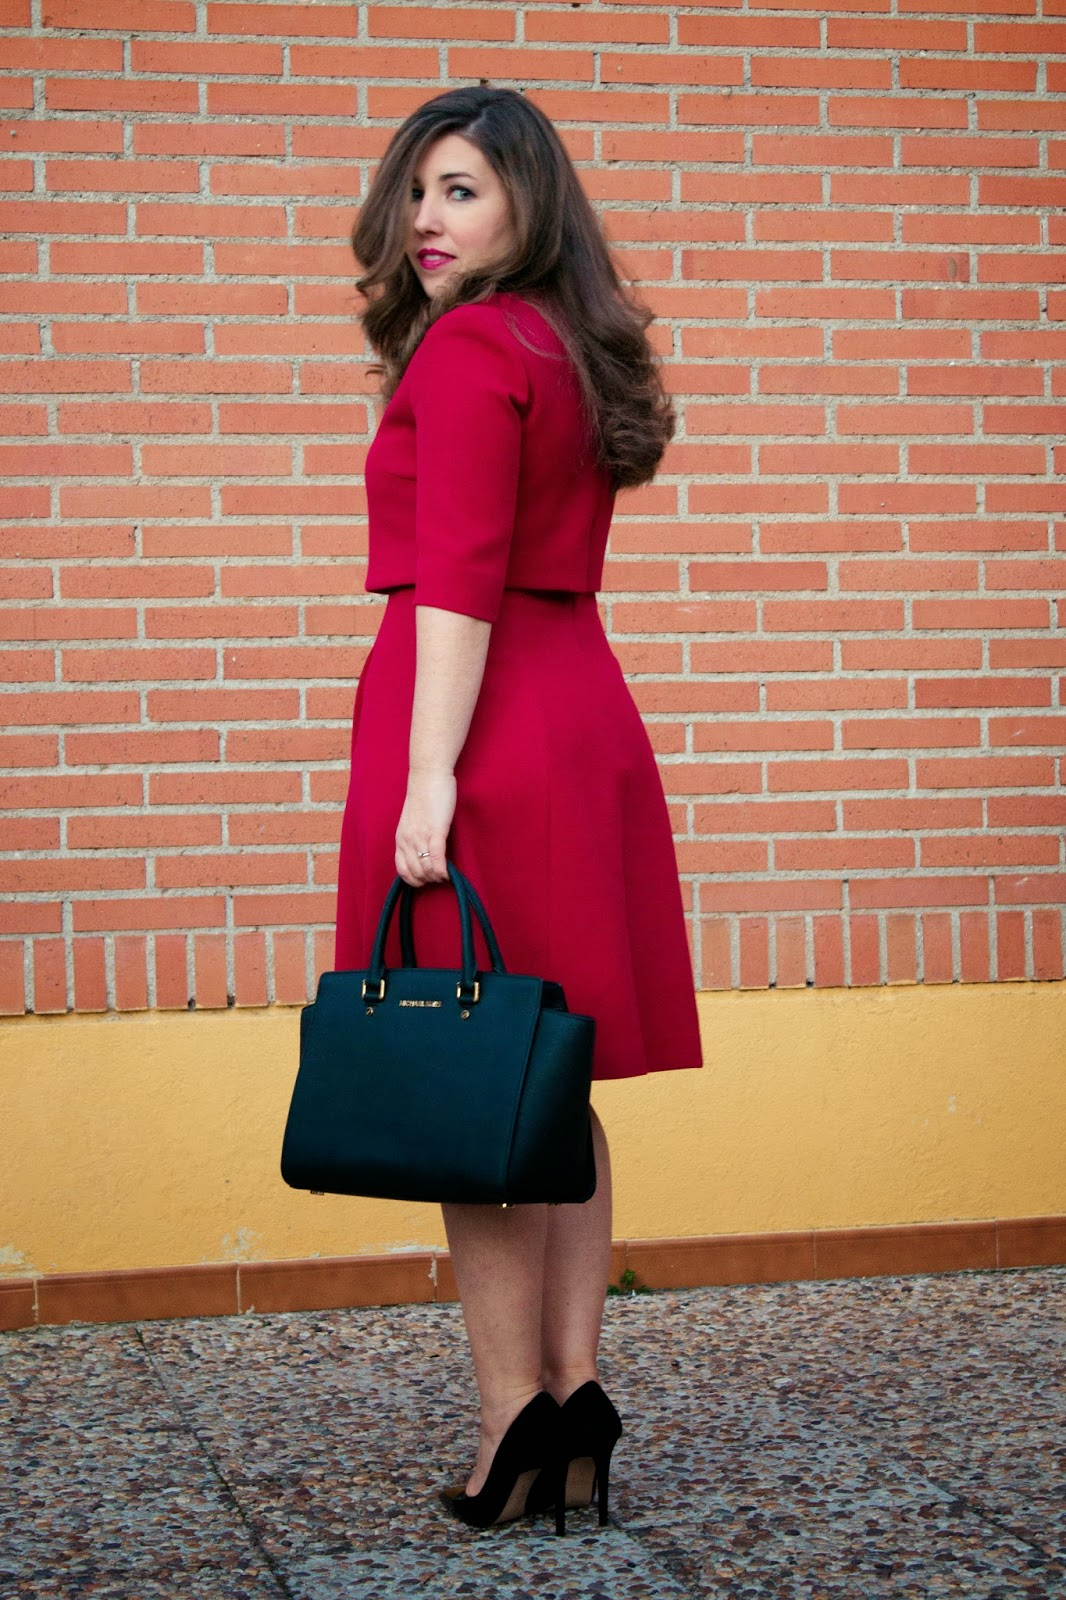 look, outfit, protocolo, blogger, fashionblogger, Esencia Trendy, Asesora de Imagen, Personal Shopper, Michael Kors, Zara, Adolfo Dominguez, jewels, Yanes Young, luxe,